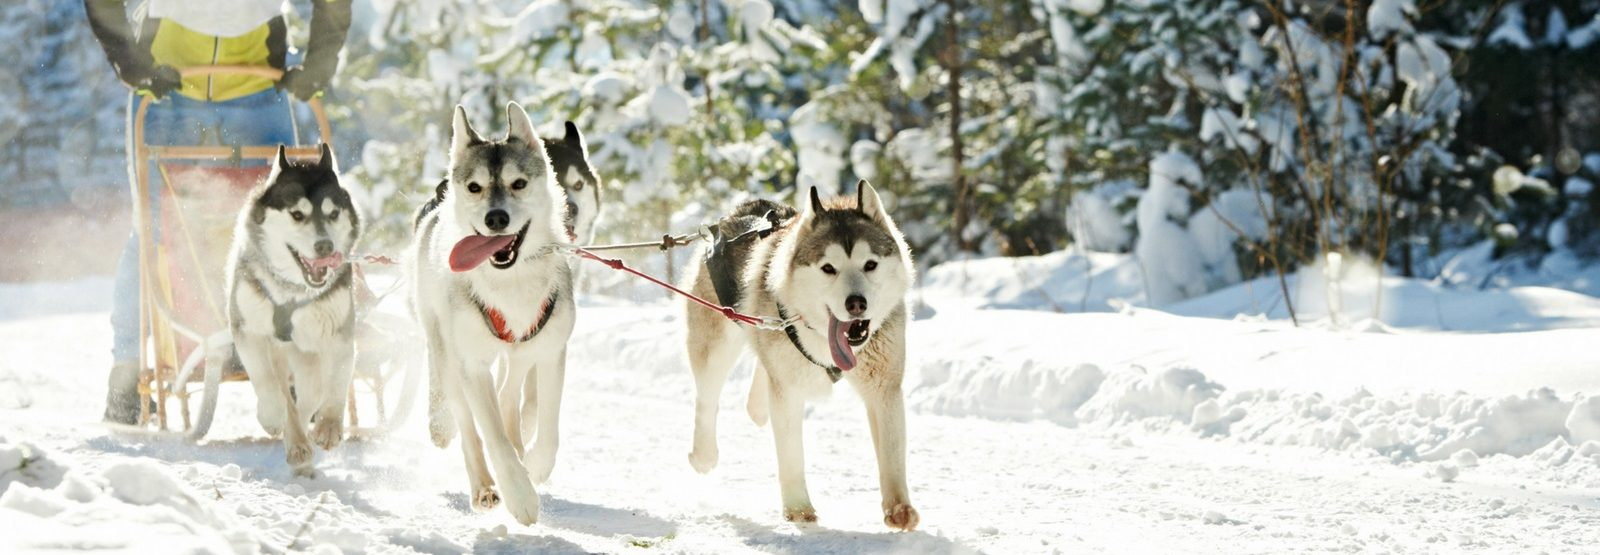 Dog & Reindeer Sledding Adventure Holiday Another World Adventures